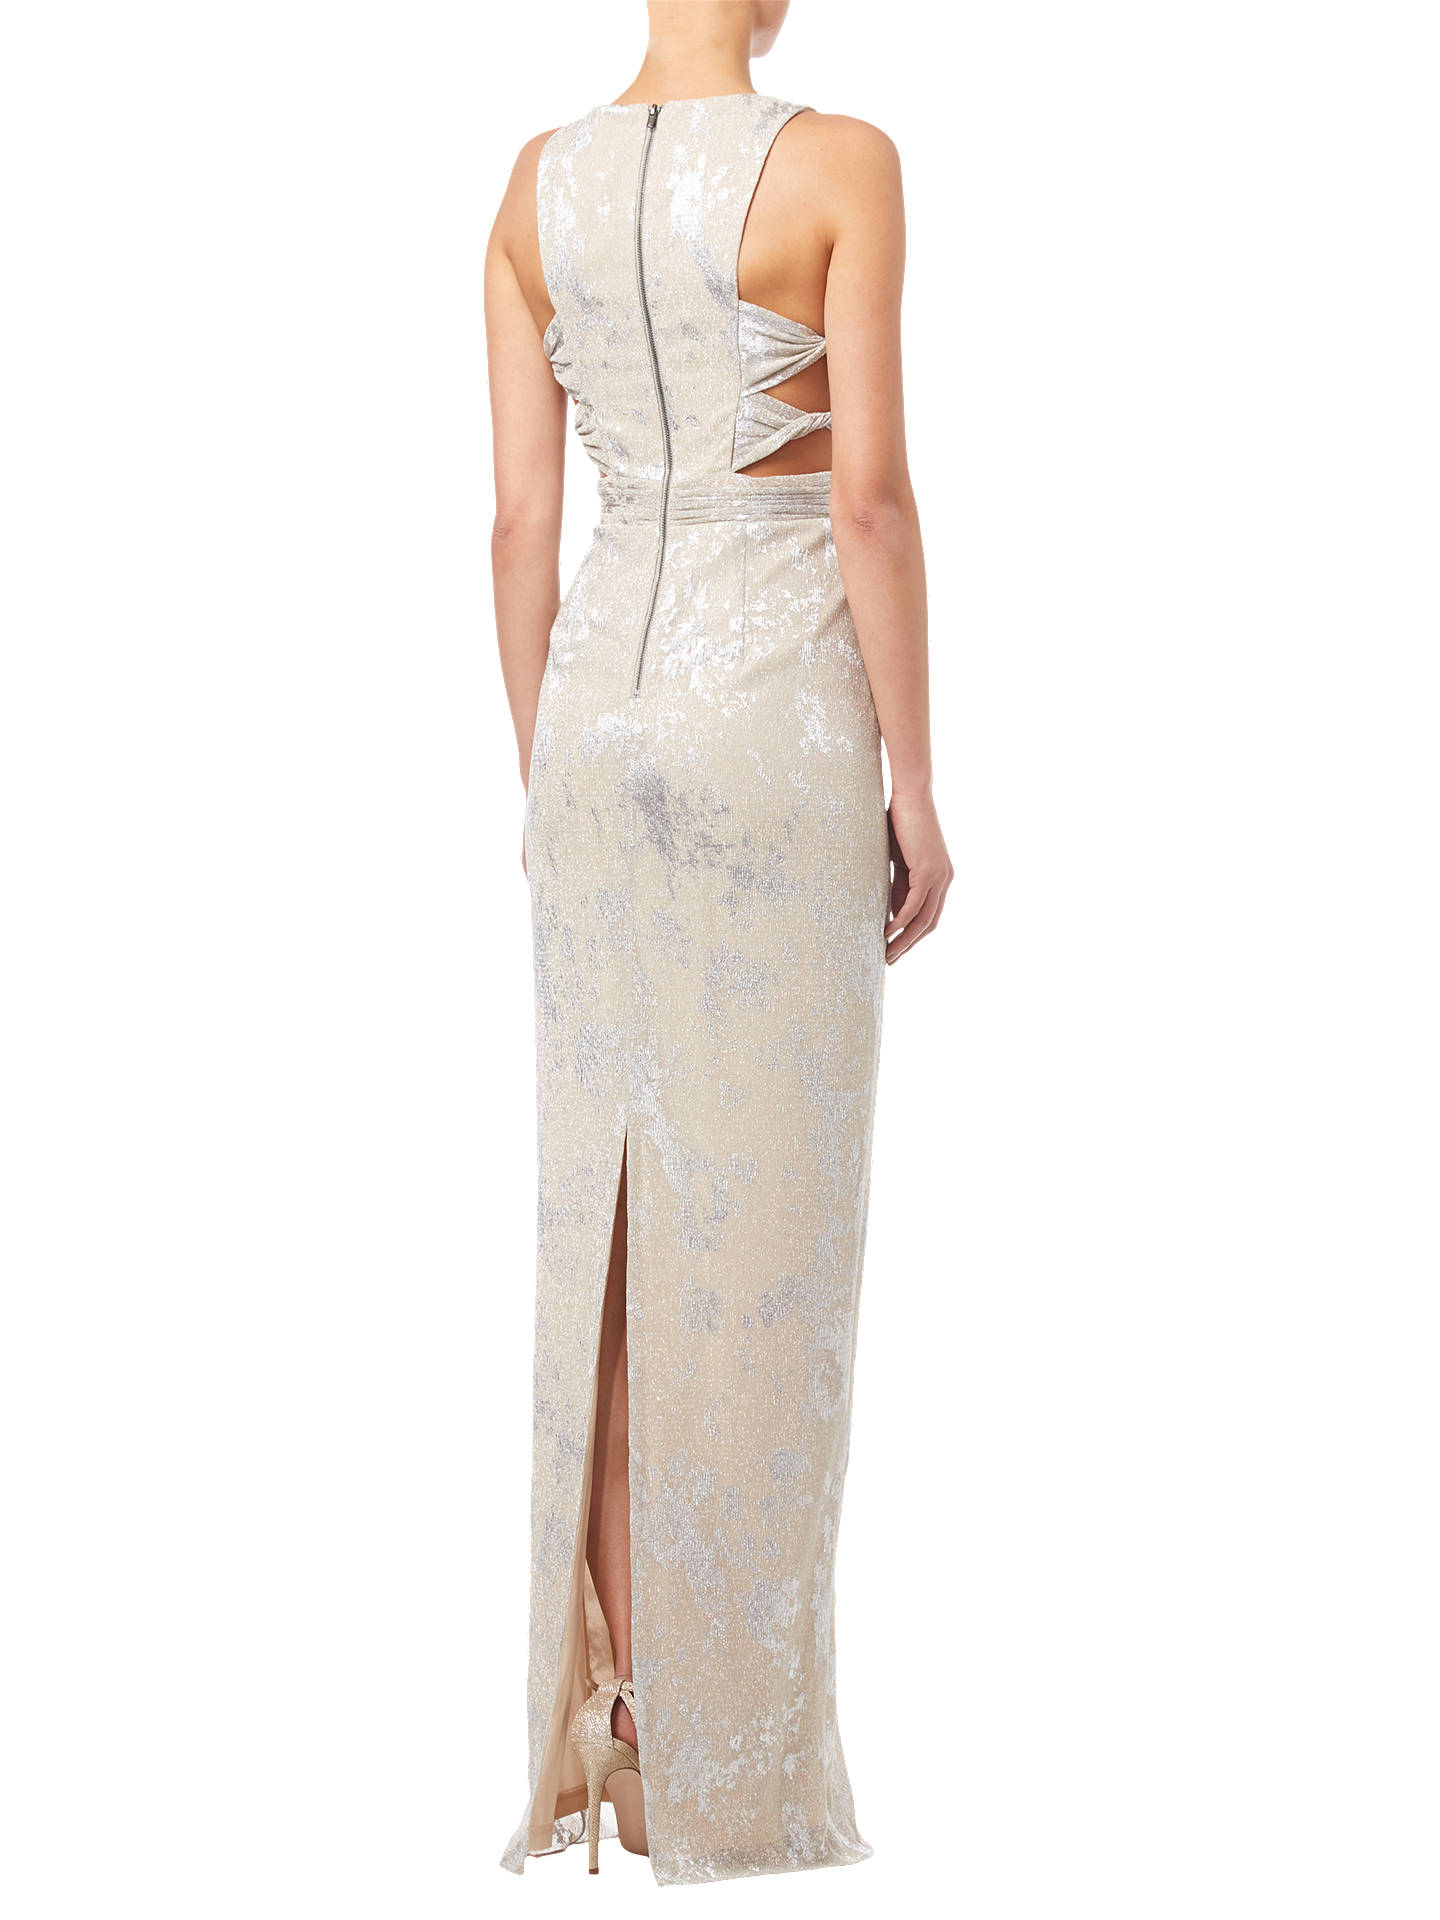 BuyAdrianna Papell Halterneck Long Dress, Champagne, 8 Online at johnlewis.com